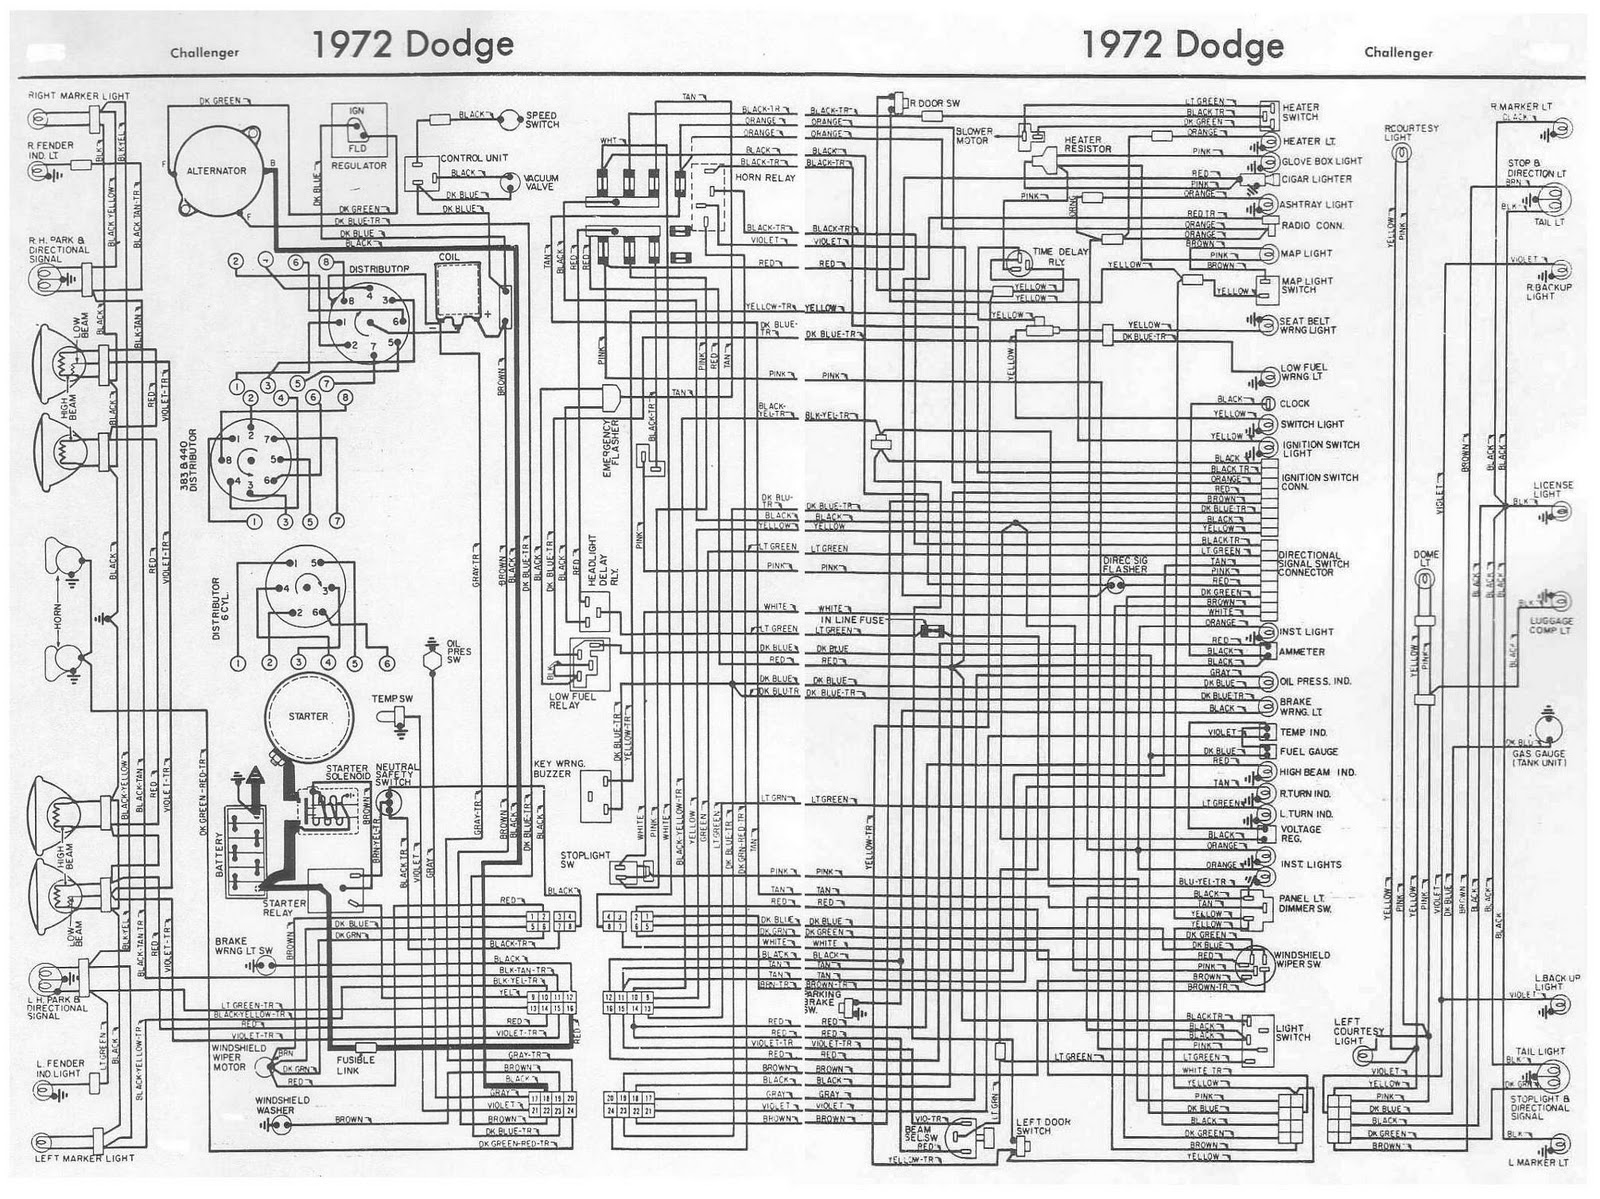 Dodge+Challenger+1972+Complete+Wiring+Diagram dodge challenger 1972 complete wiring diagram all about wiring wiring harness for 1971 dodge charger at gsmportal.co